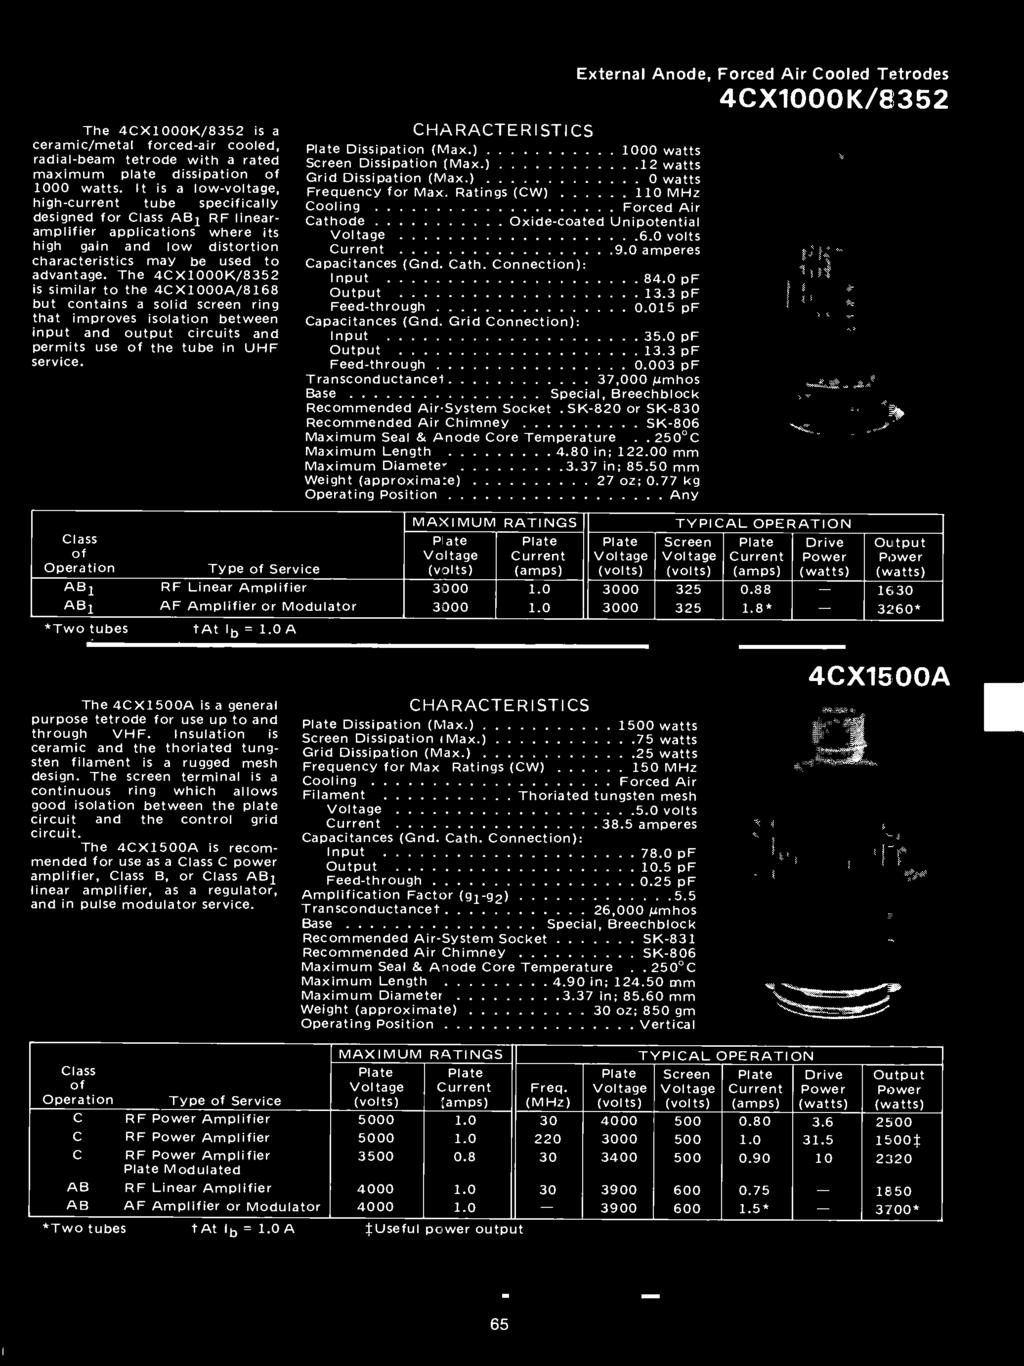 Eimac Power Grid Tubes Quick Reference Catalog 175 Division Ac Wiring Diagram 230e 1986 Circuit And The 4x1000k 8352 Is Similar To 4x1000a 8168 But Contains A Solid Screen